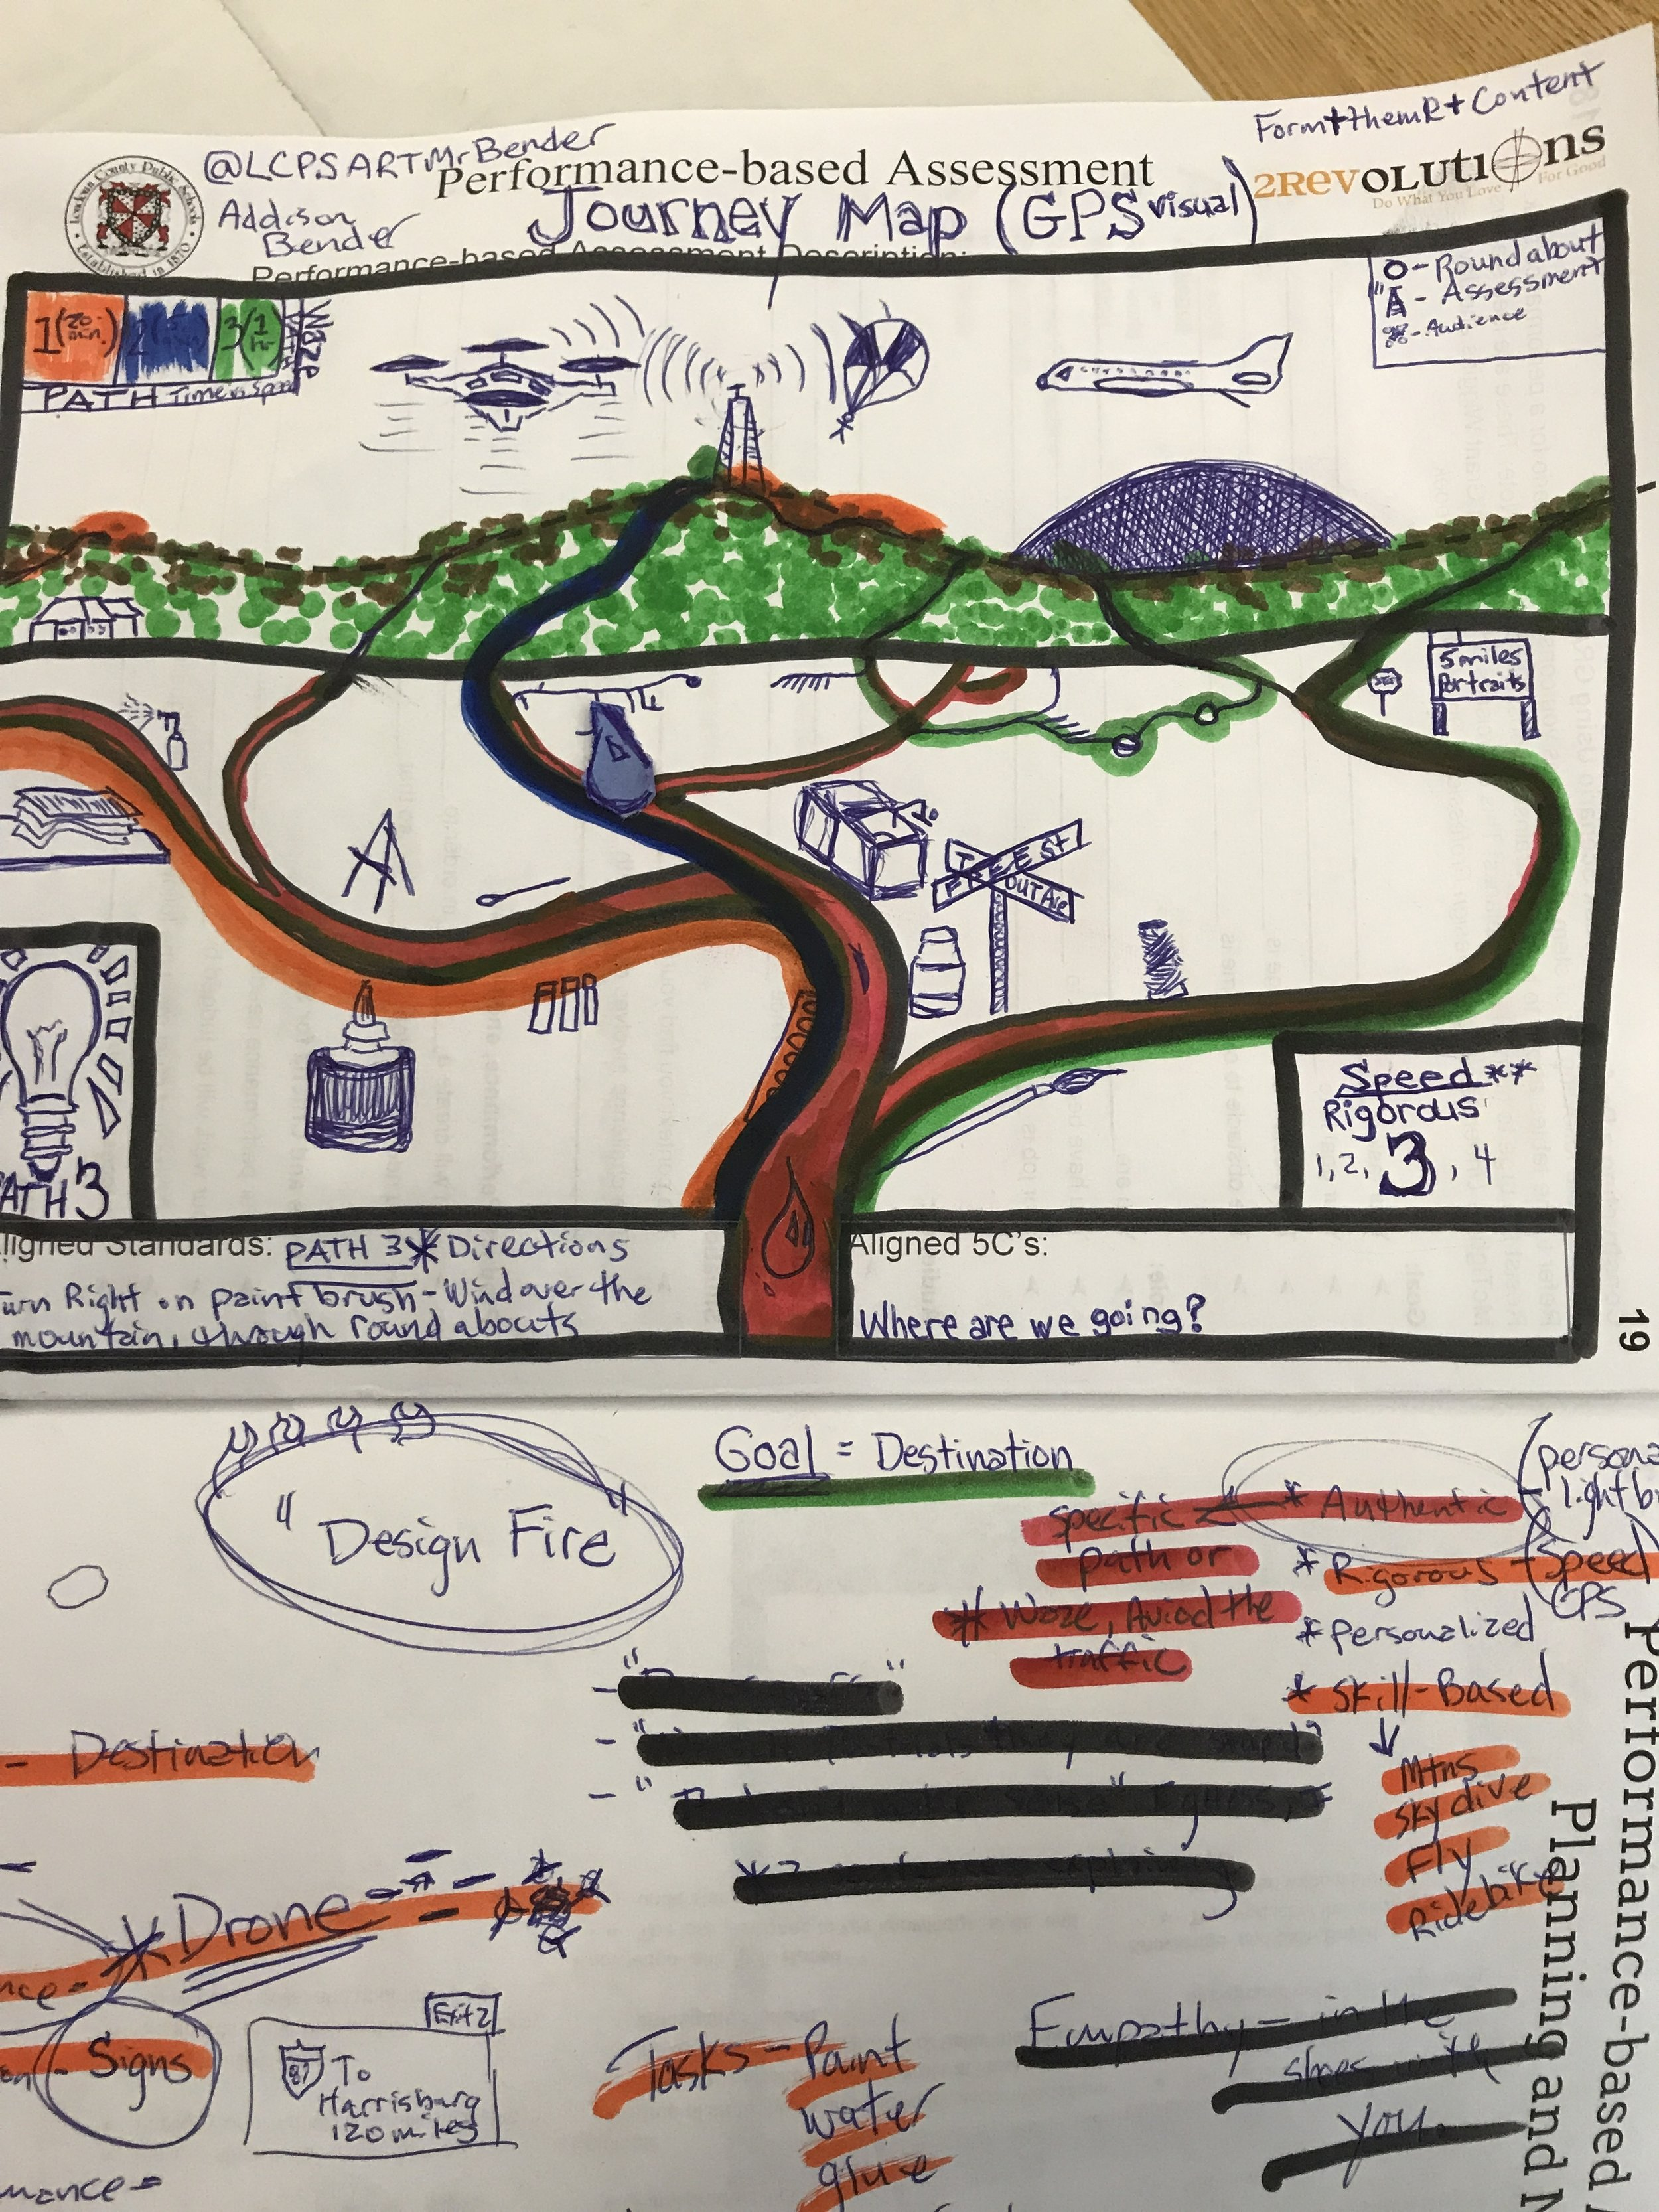 A participant sketched out some of his ideas of how the journey of performance-based assessment will look for him and his students.